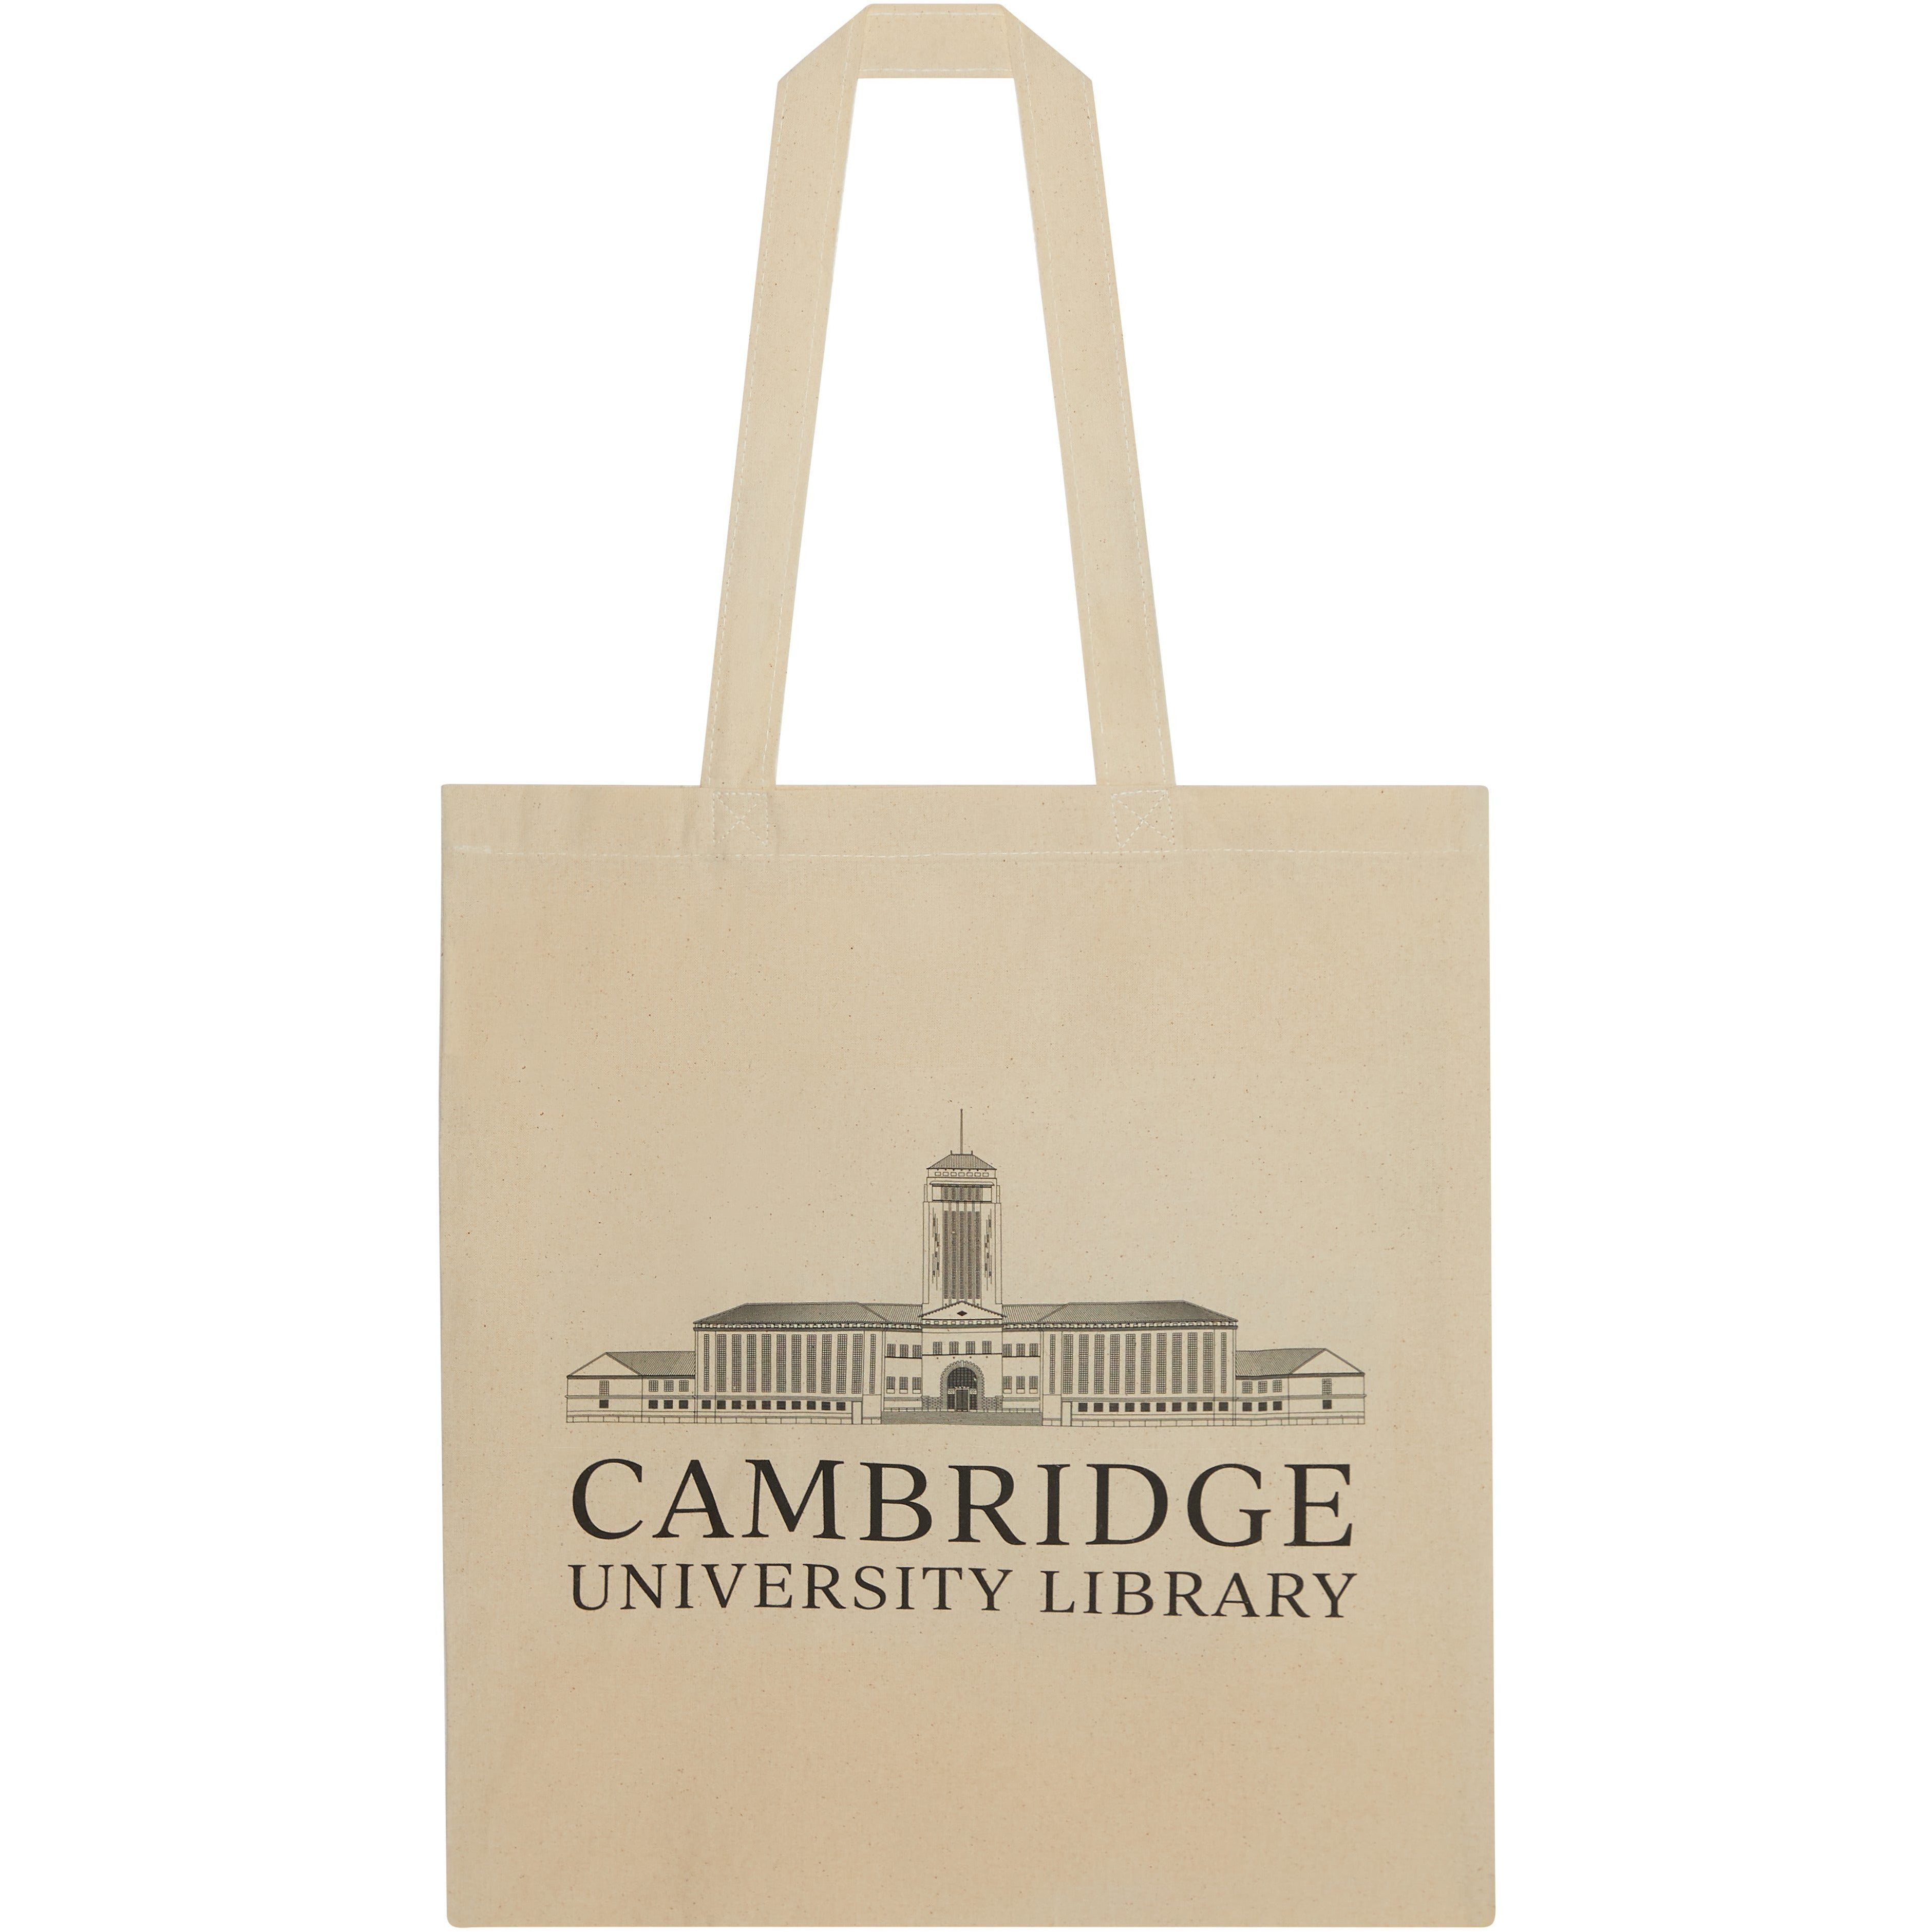 Featured image for the project: Cambridge University Library Illustration -Tote bag